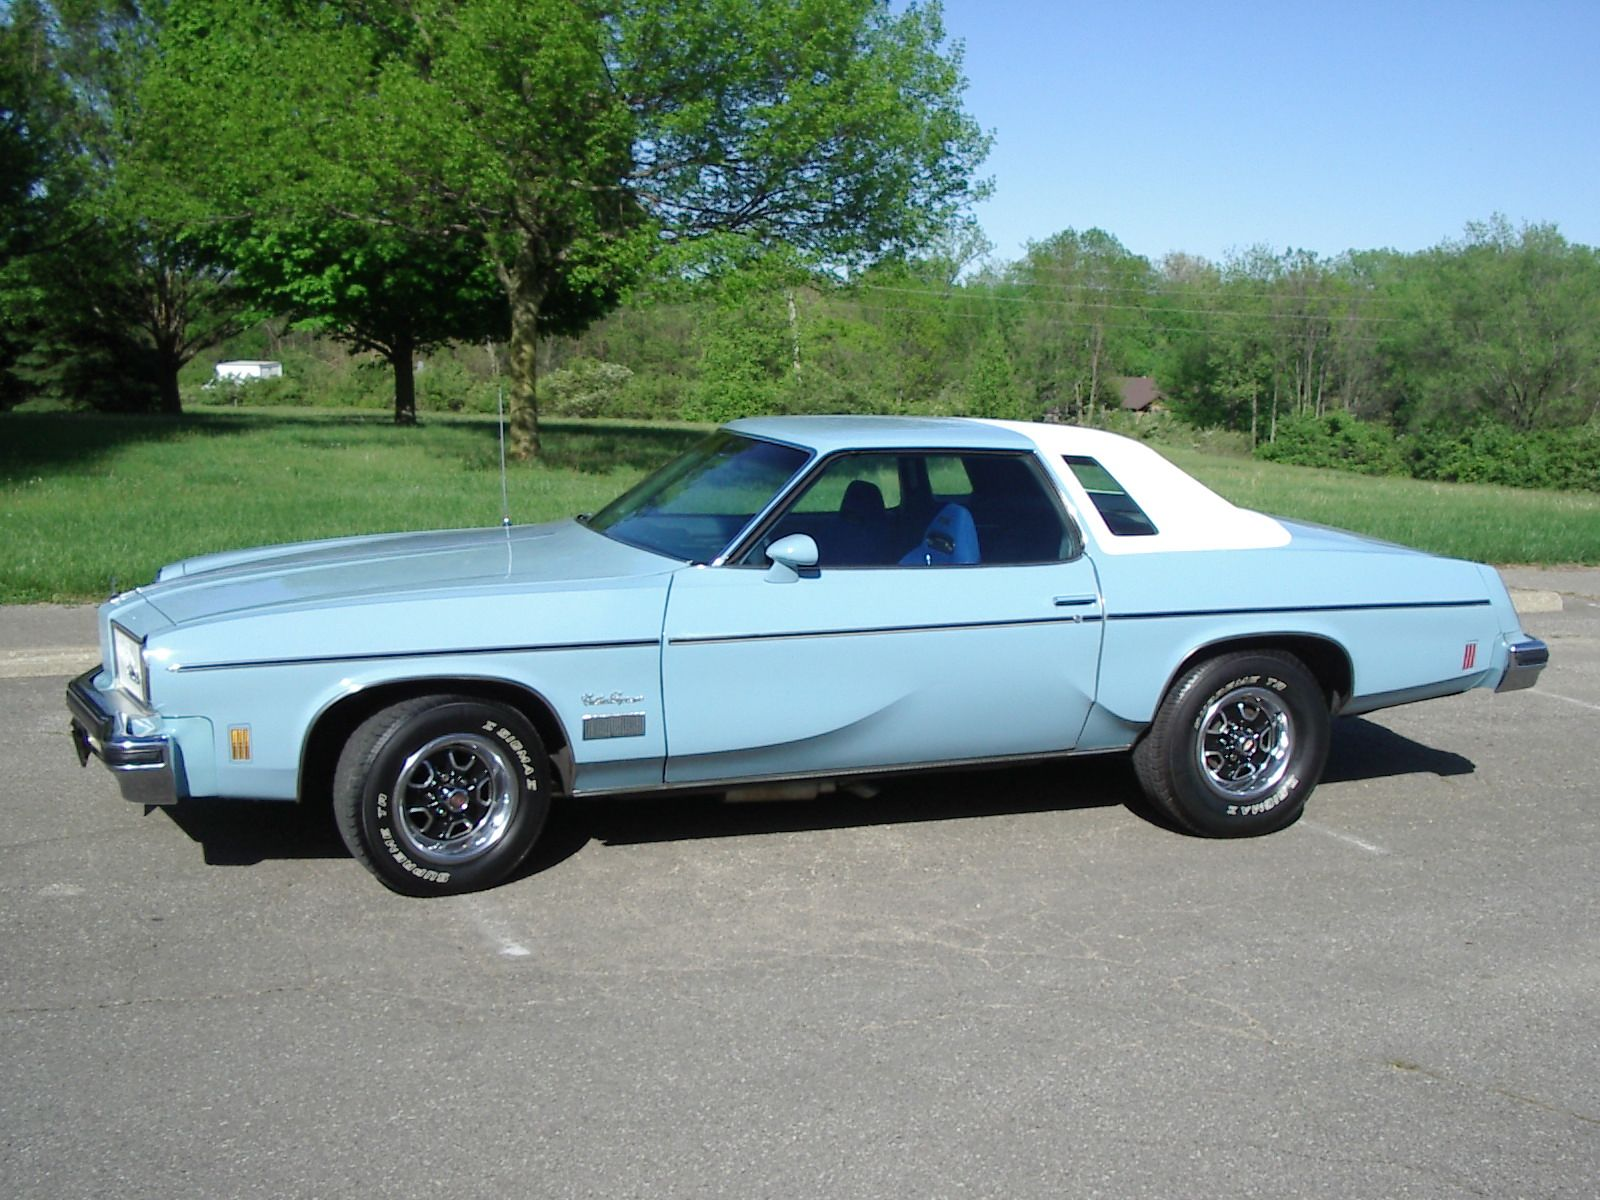 Oldsmobile cutlass supreme picture of 1977 oldsmobile cutlass supreme olds cutlass s pinterest oldsmobile cutlass supreme oldsmobile cutlass and